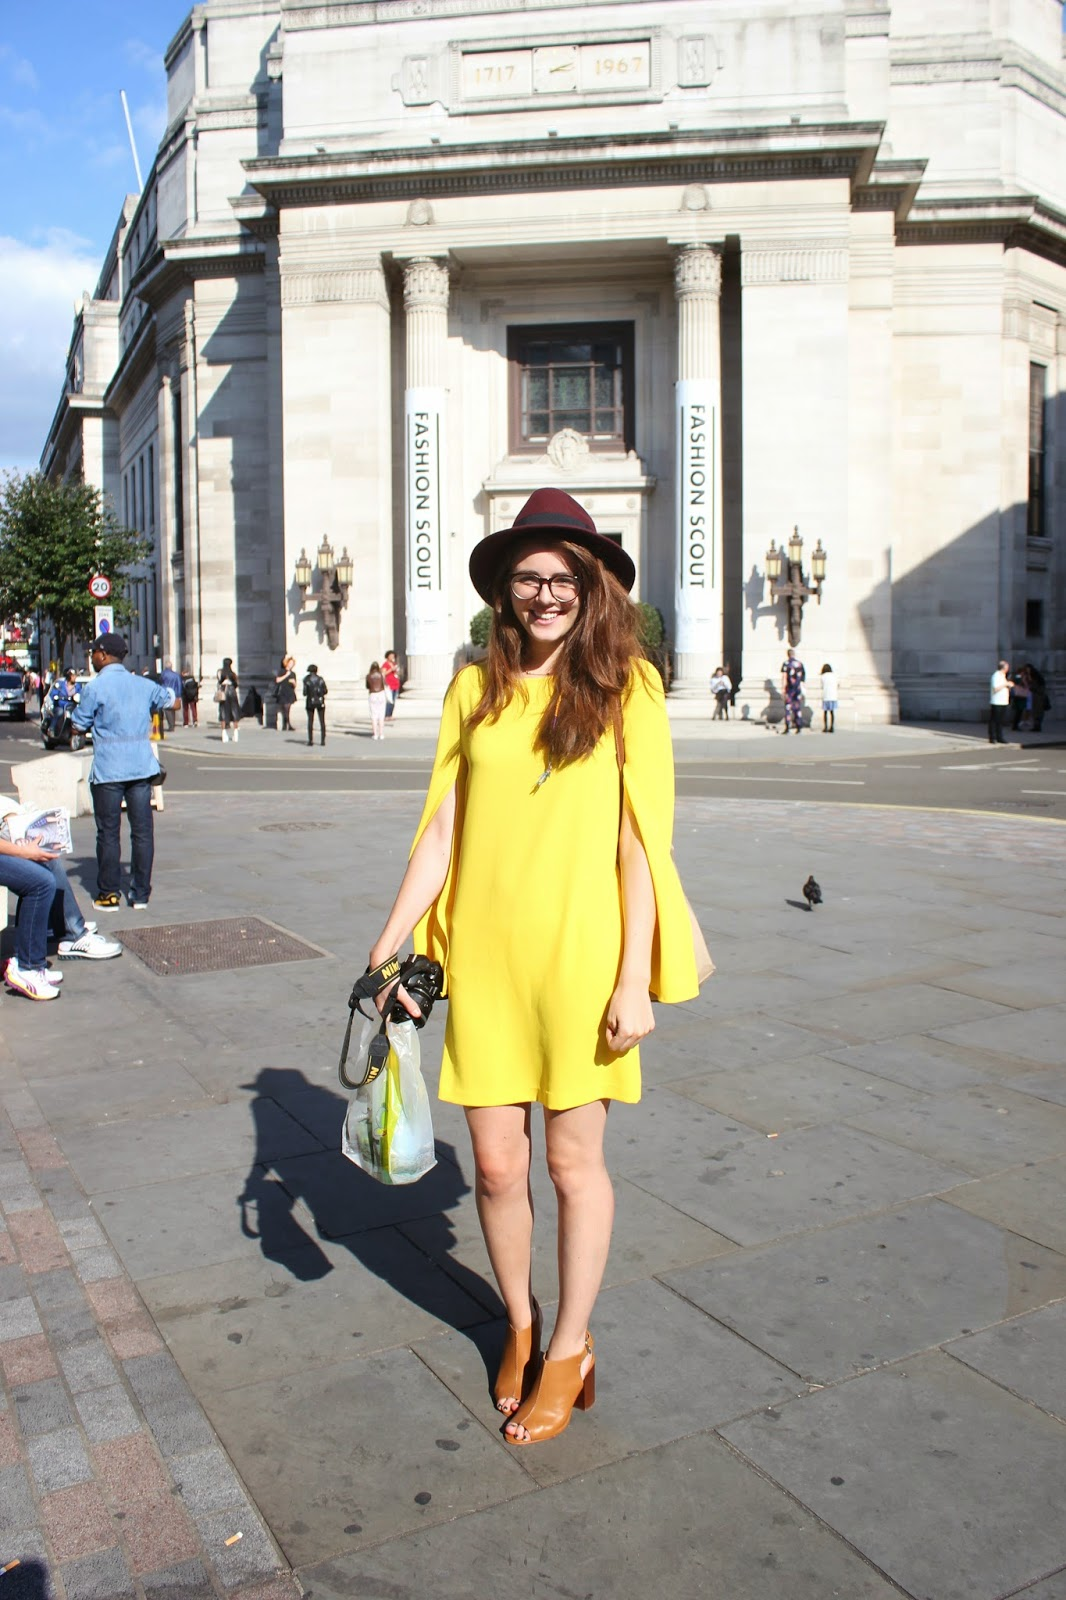 london-fashion-week-2014-lfw-spring-summer-2015-freemasons-hall-fashion-scout-building-girl-happy-dress-hat-heels-glasses